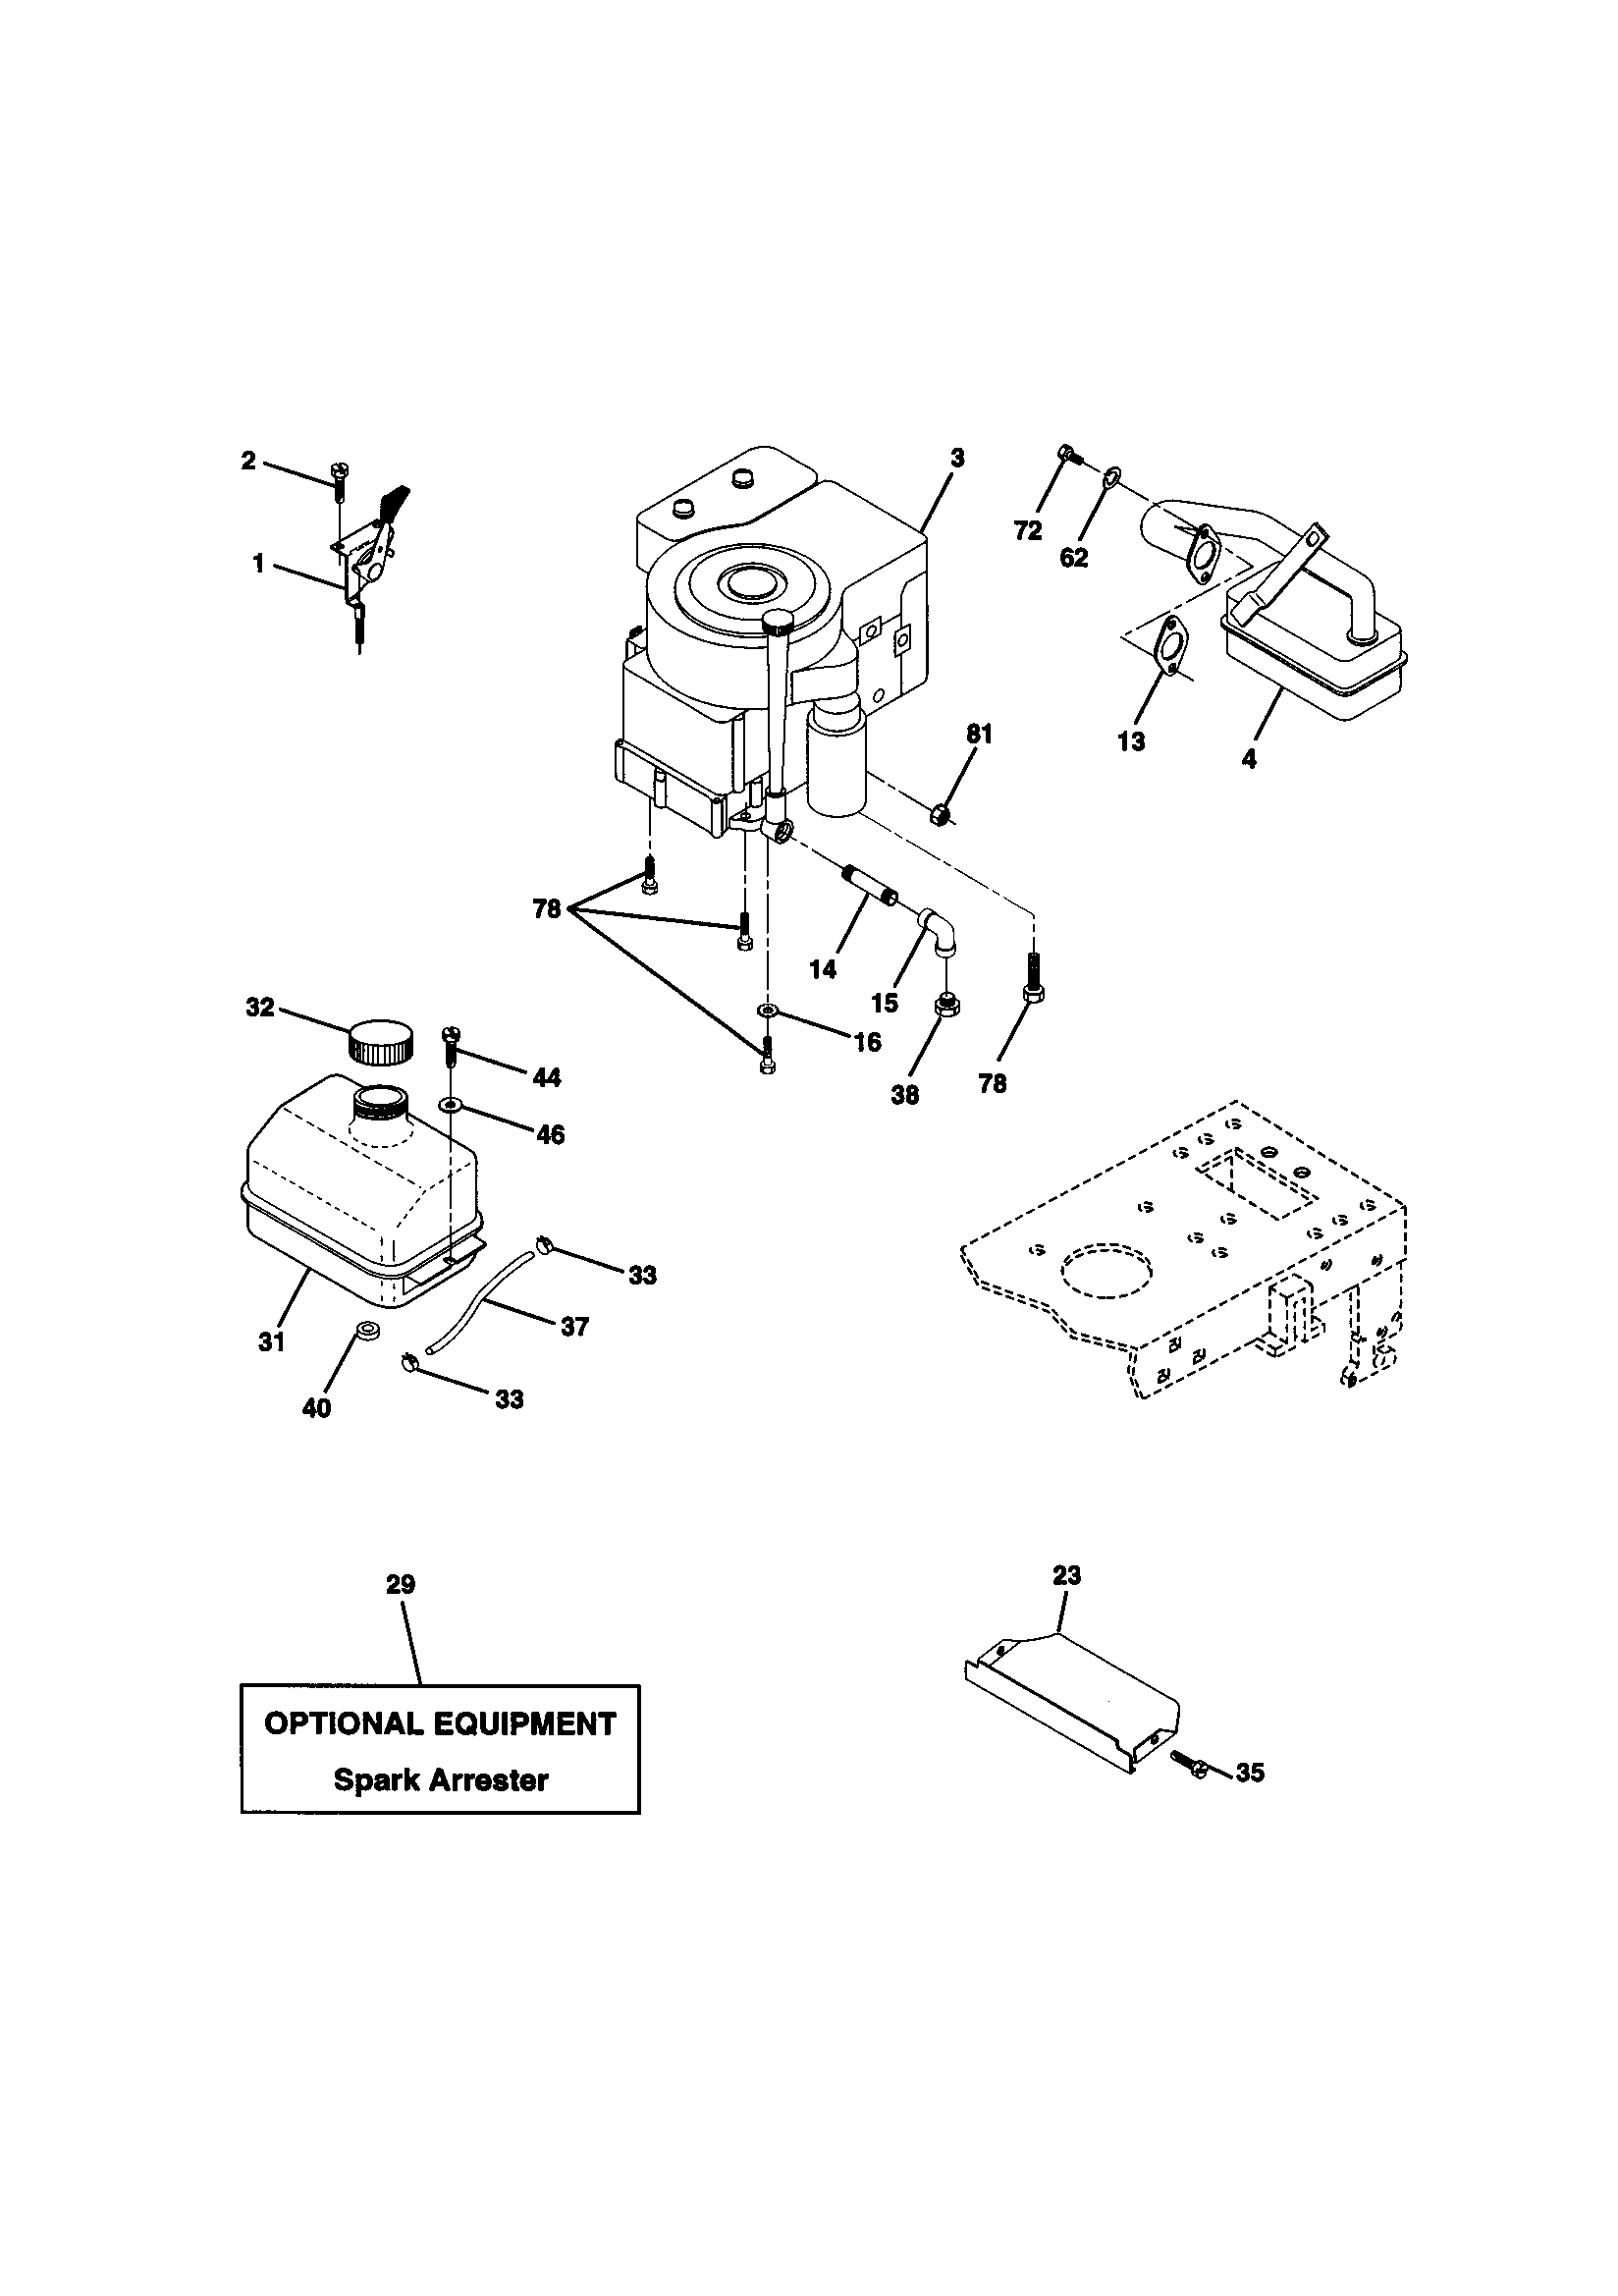 Honda gcv160 parts diagram model wire harness grommet p9020369 00005 honda gcv160 parts diagram modelhtml